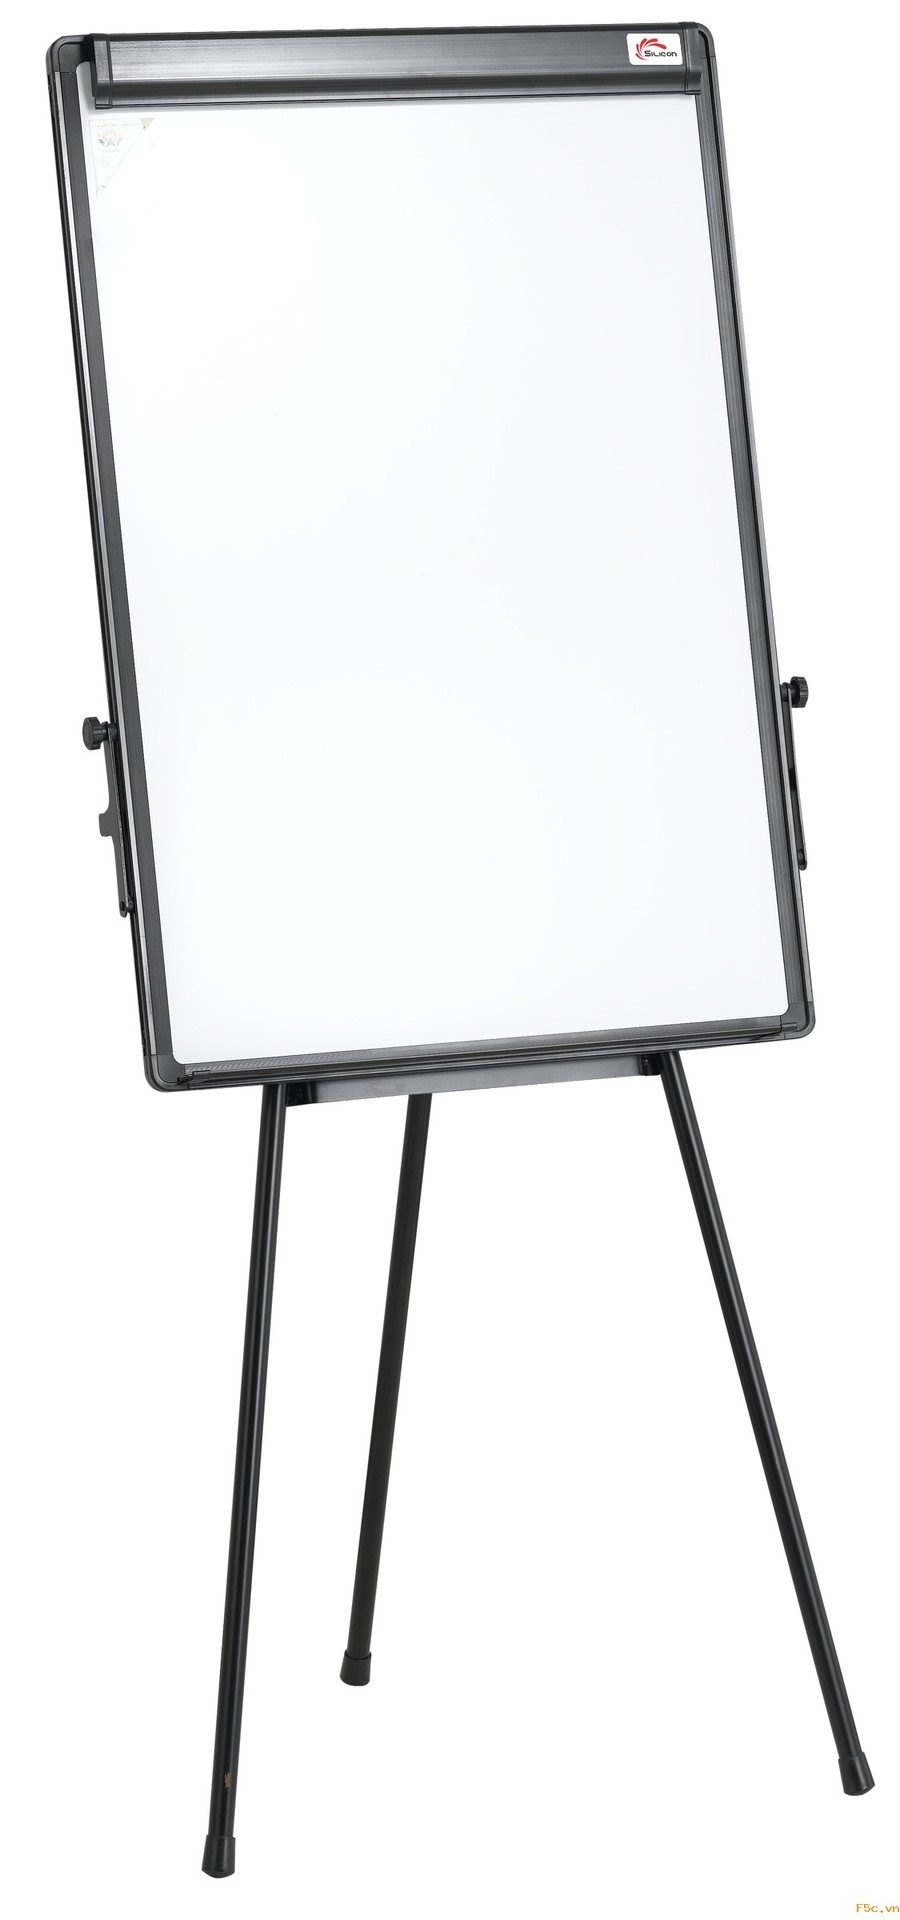 Flip chart clipart picture stock Download flip chart clipart Paper Flip chart Stationery | Paper ... picture stock